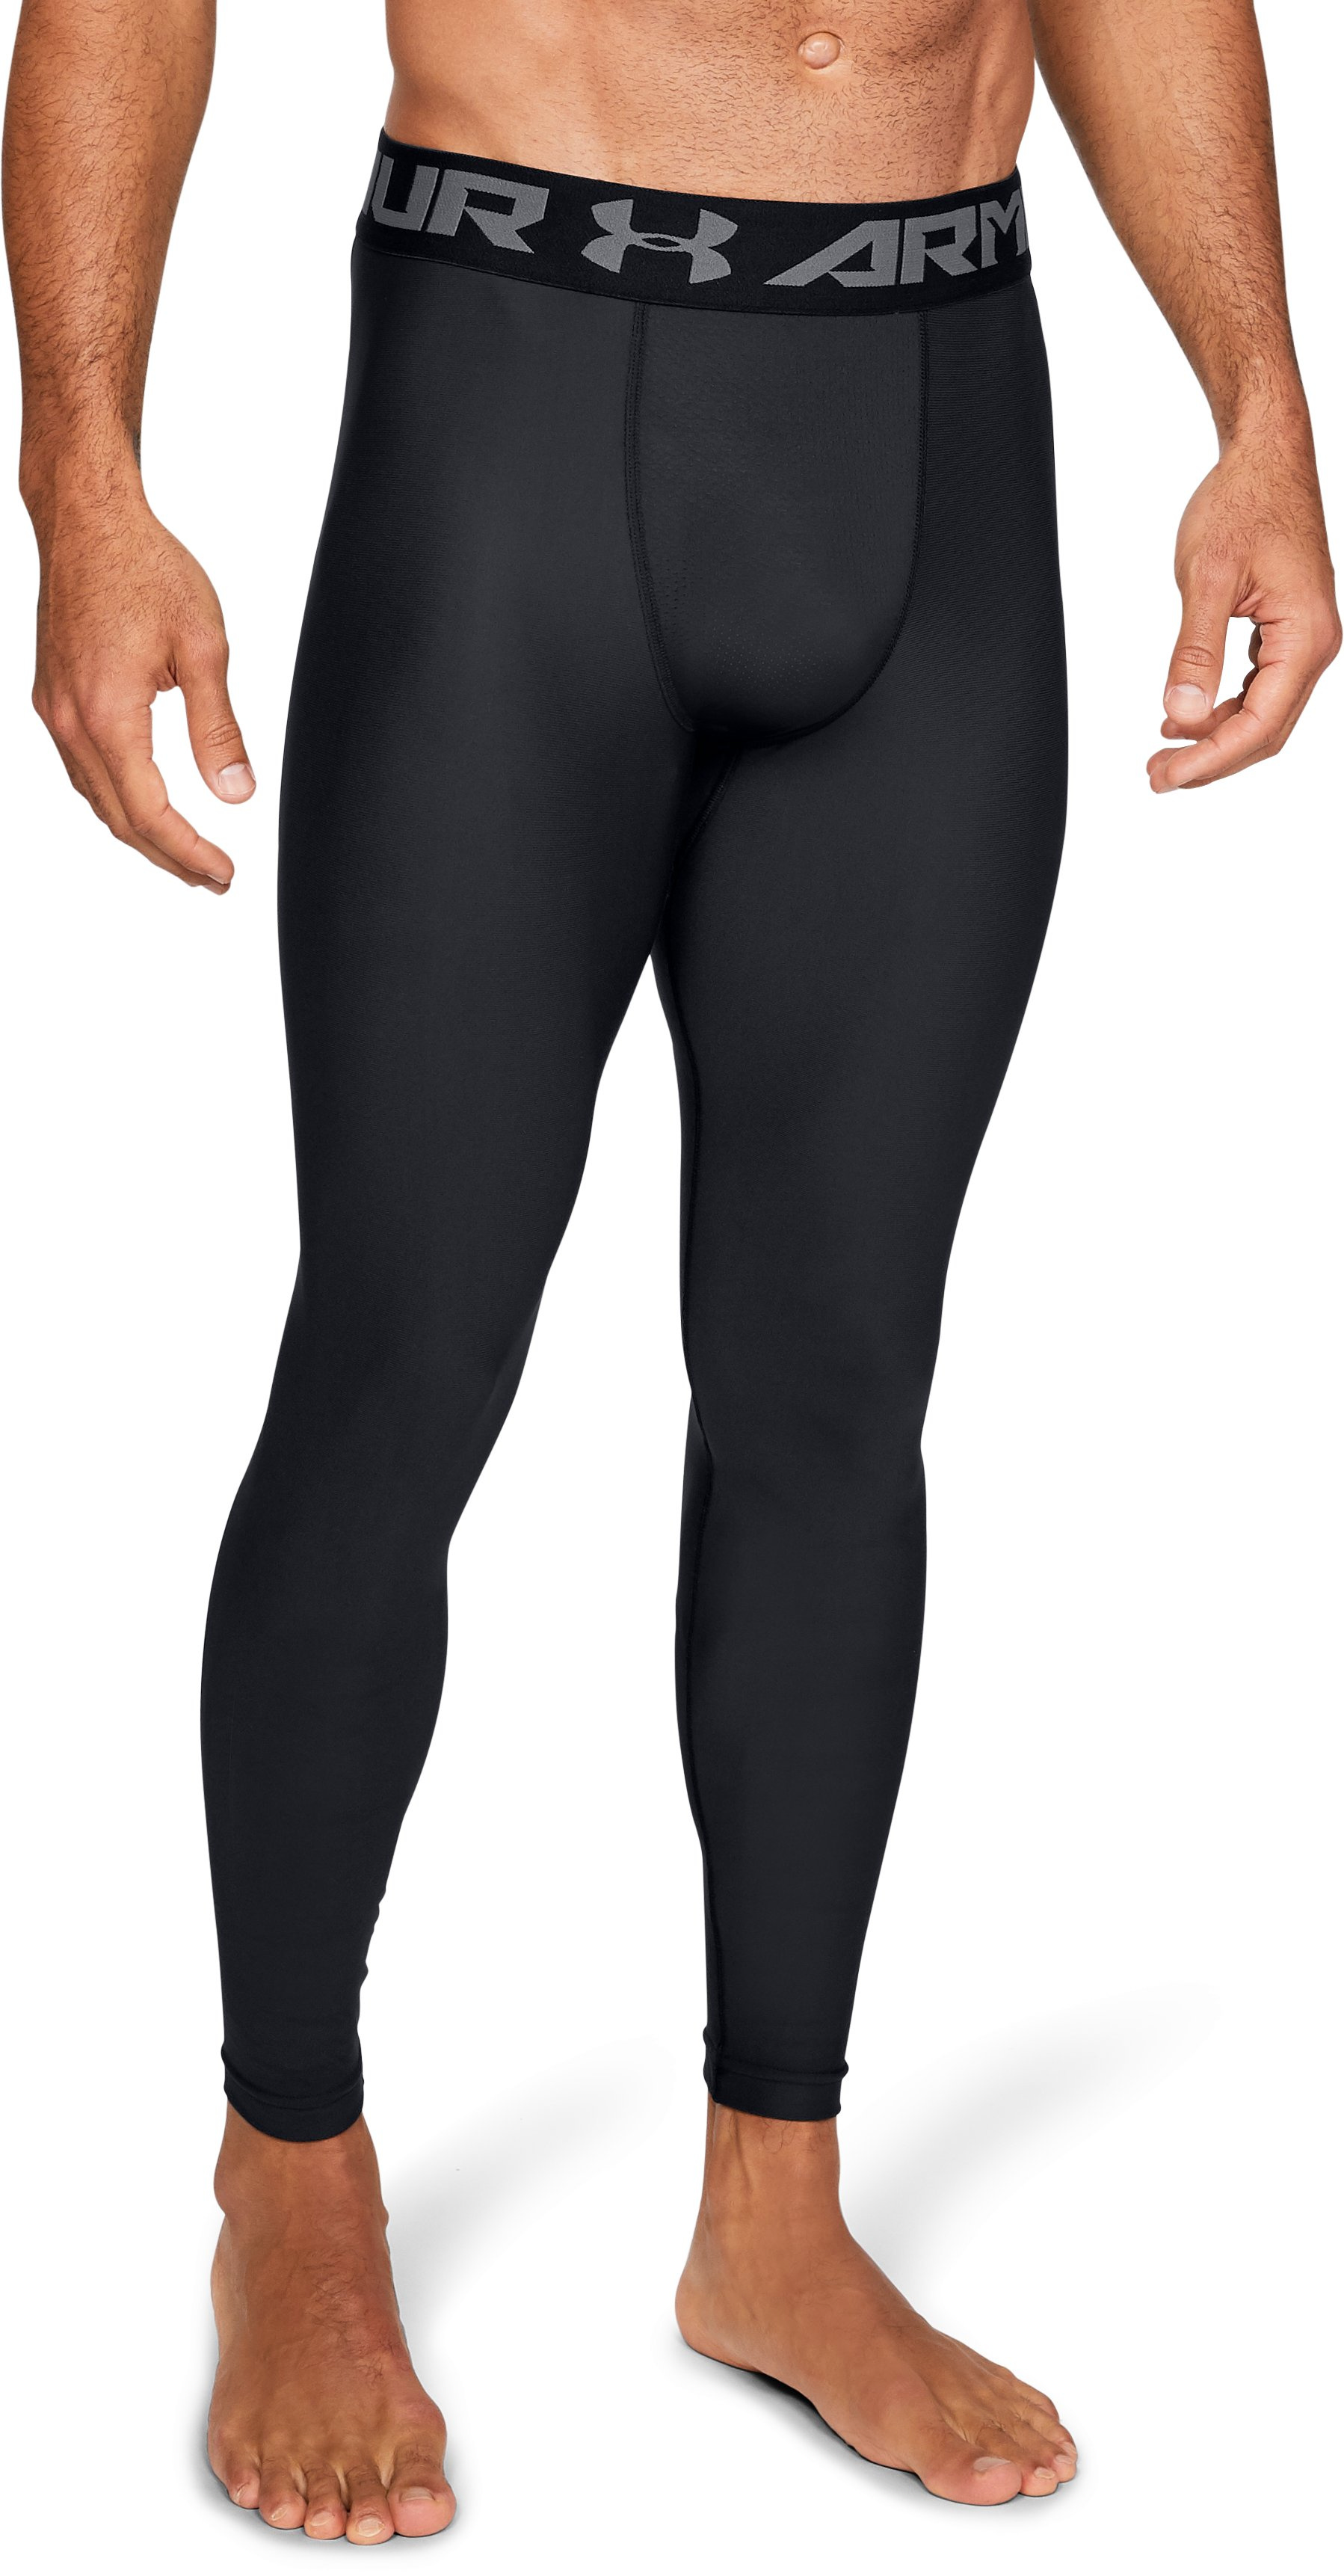 large leggings Men's HeatGear® Armour Compression Leggings Feels good...Happy with the purchase....Love these leggings.